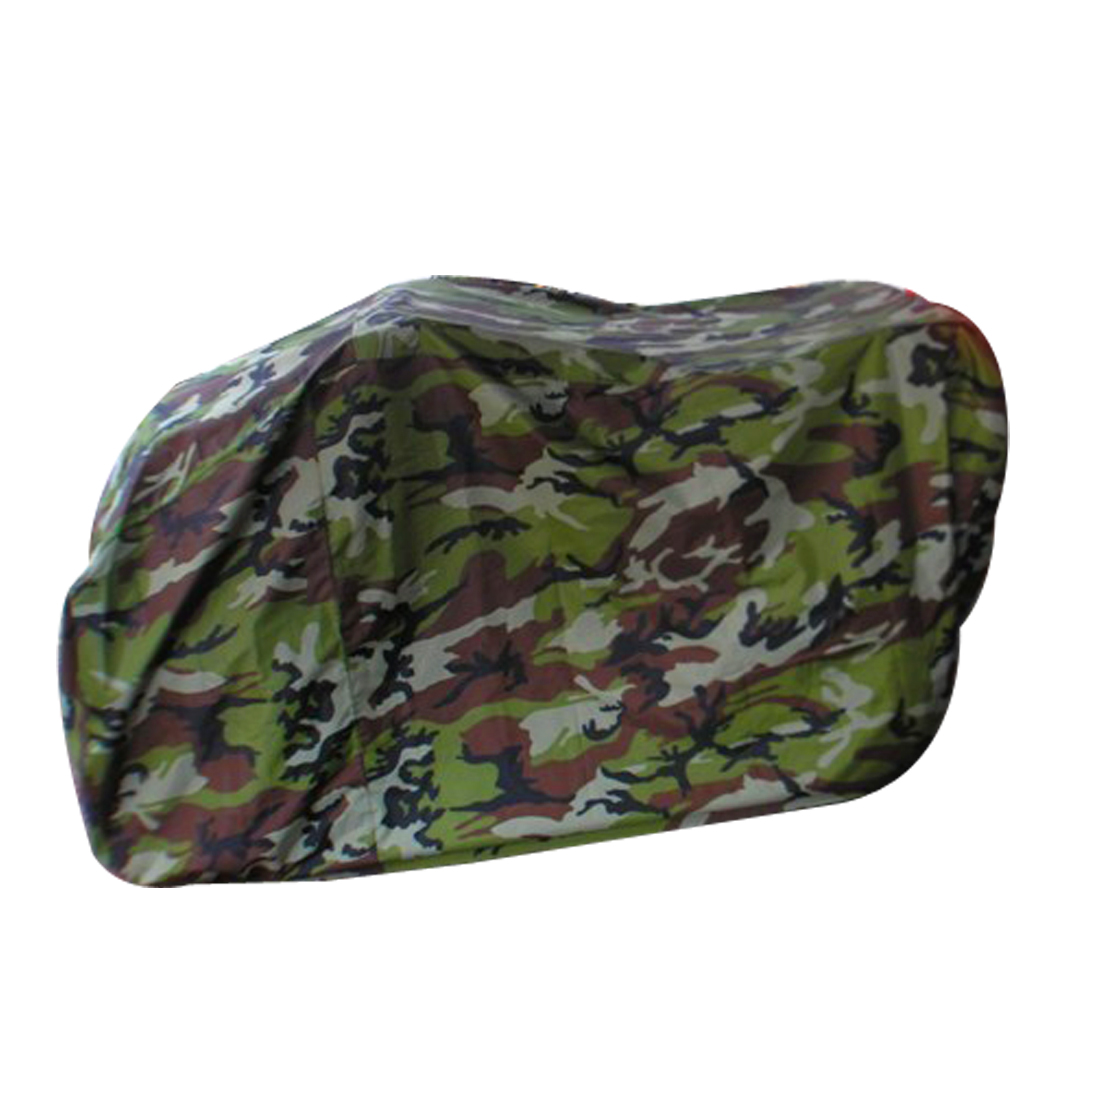 Camouflage Print Quad Bike ATV Waterproof Rain Snow Resistant Cover Army Green